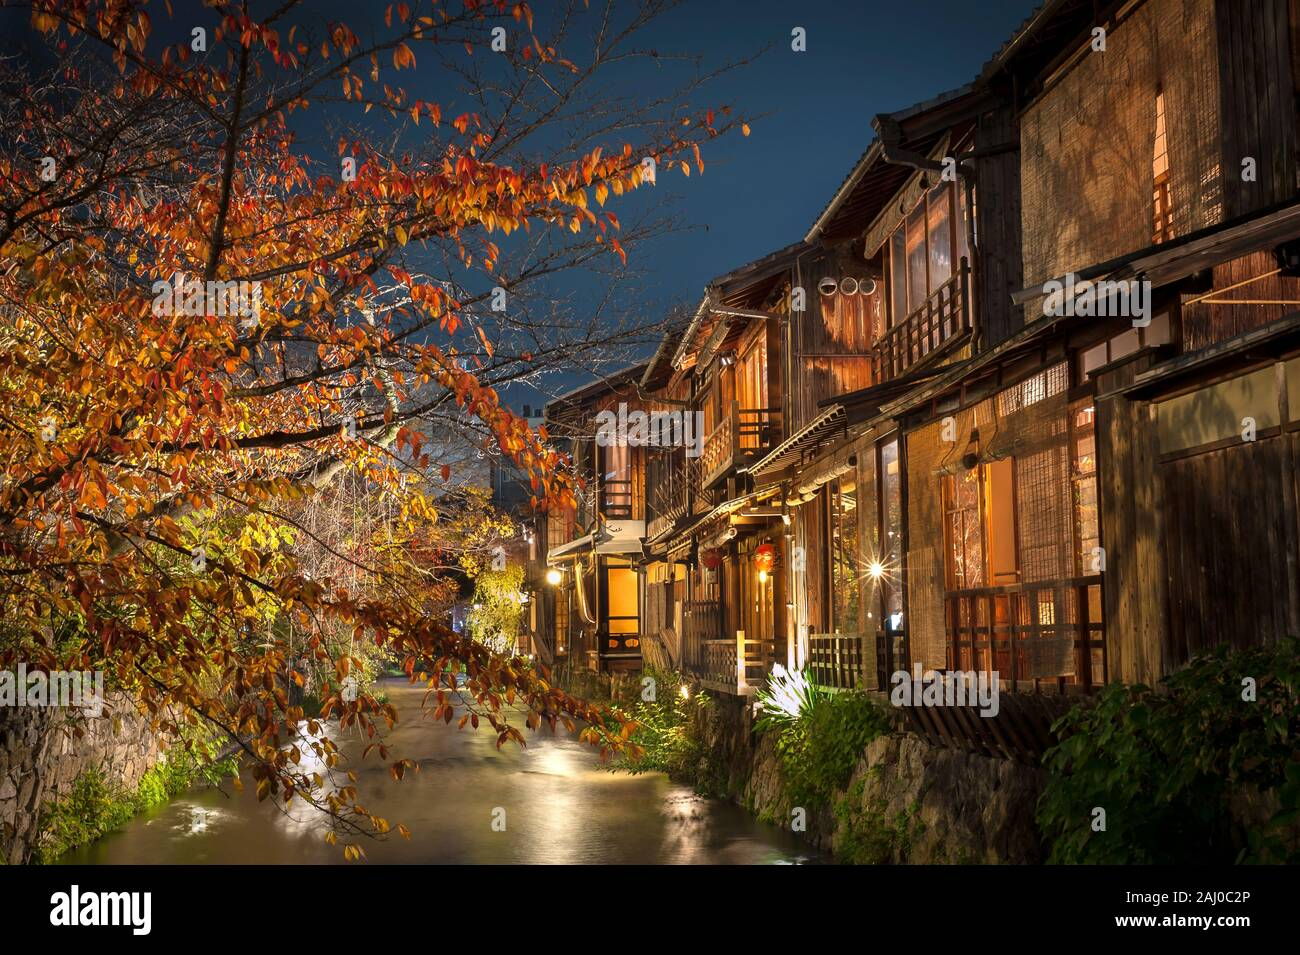 A stream runs past old wooden houses on Shirakawa Dori in the Gion district of Kyoto, Japan Stock Photo